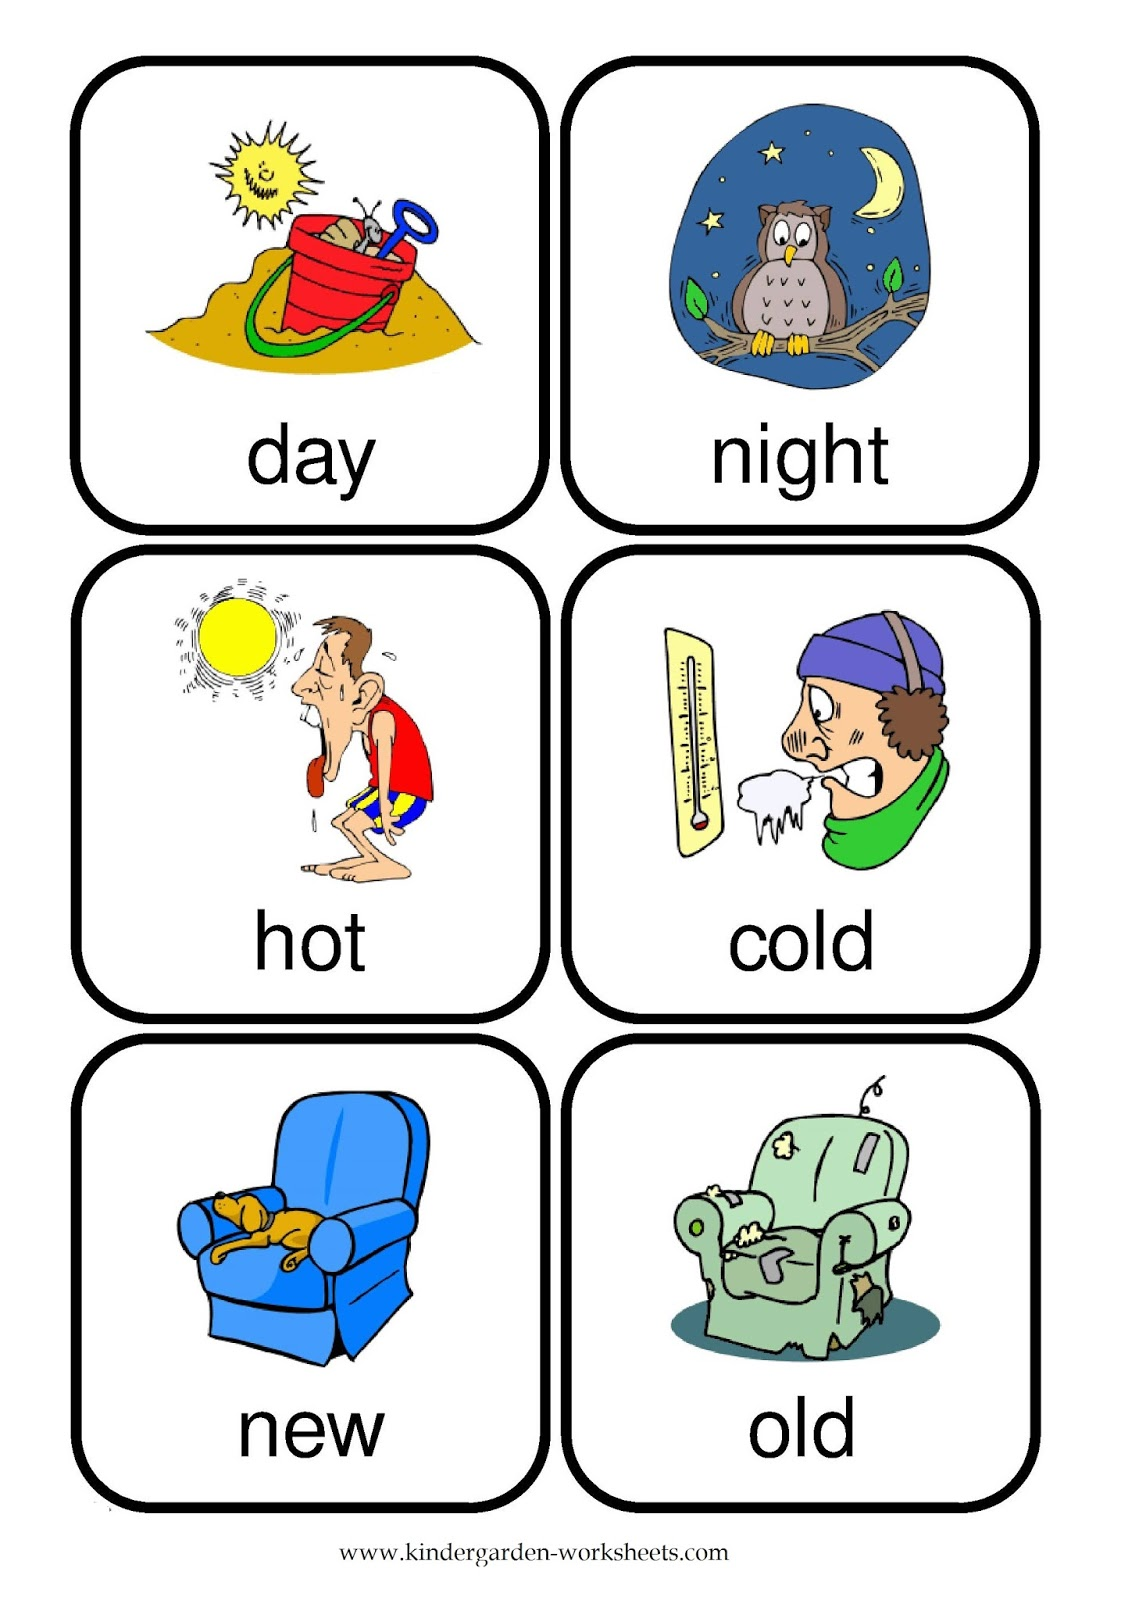 Kindergarten Worksheets Flashcards Opposite Words – Opposite Words Worksheets for Kindergarten